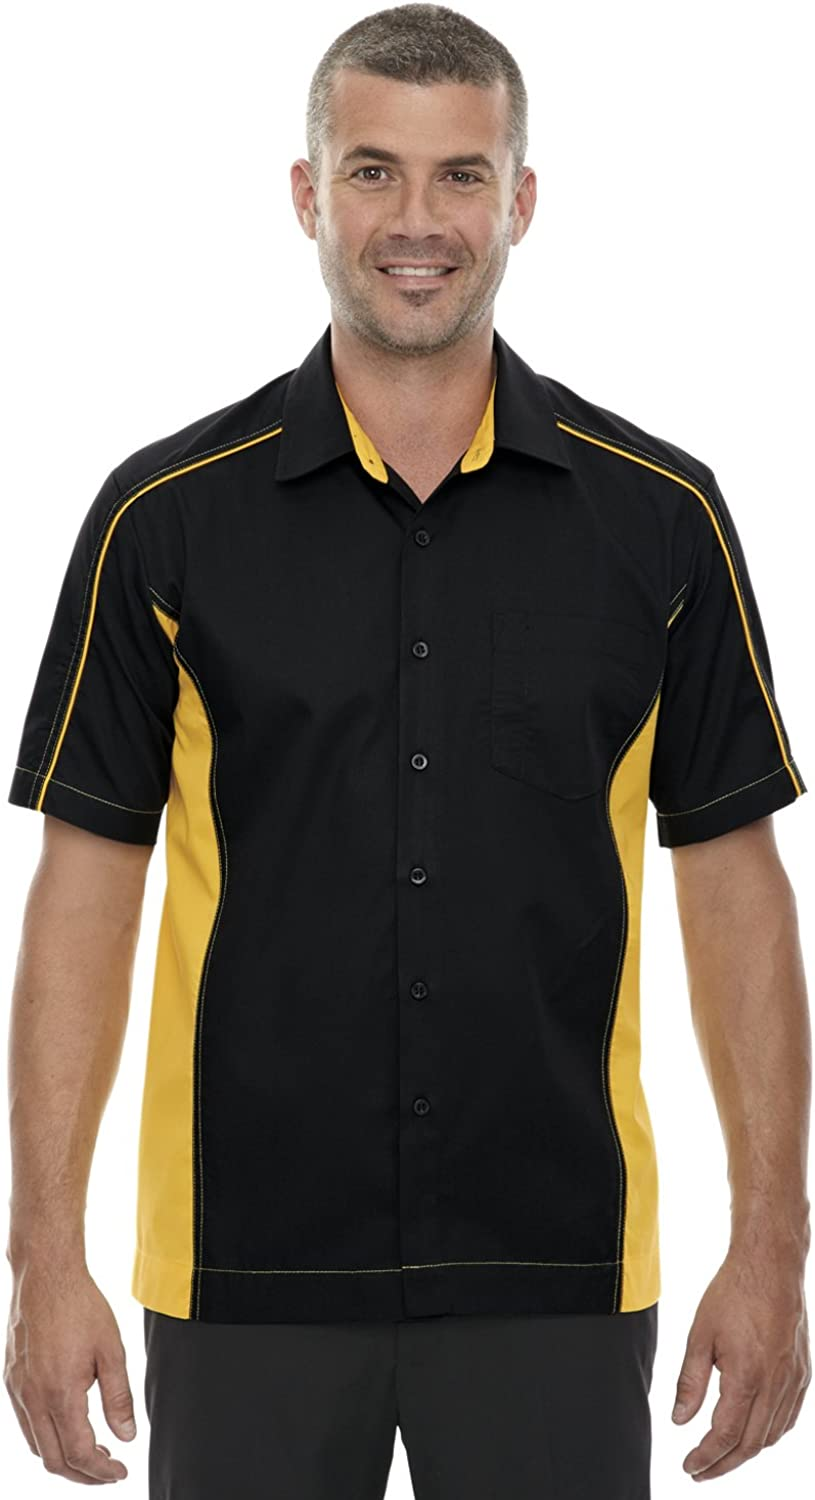 Ash City - North End North End Men's Spread Collar Tall Shirt, Black/Campus Gold, XX-Large Tall